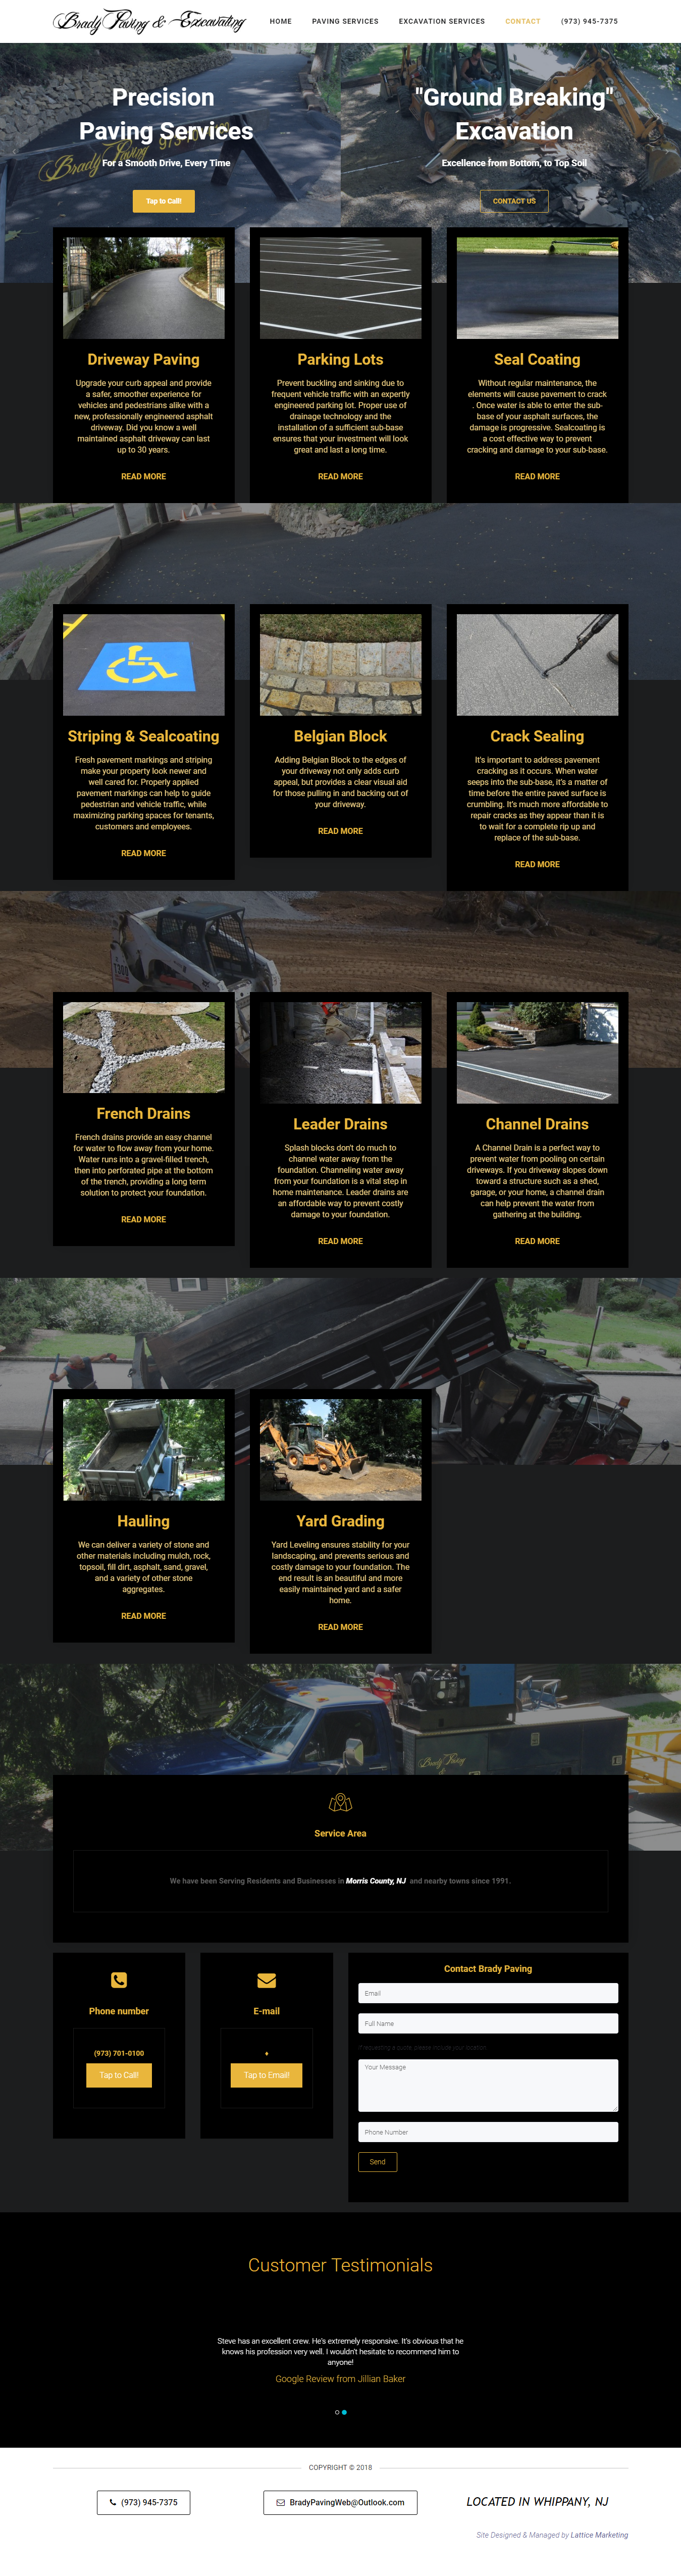 paving website design